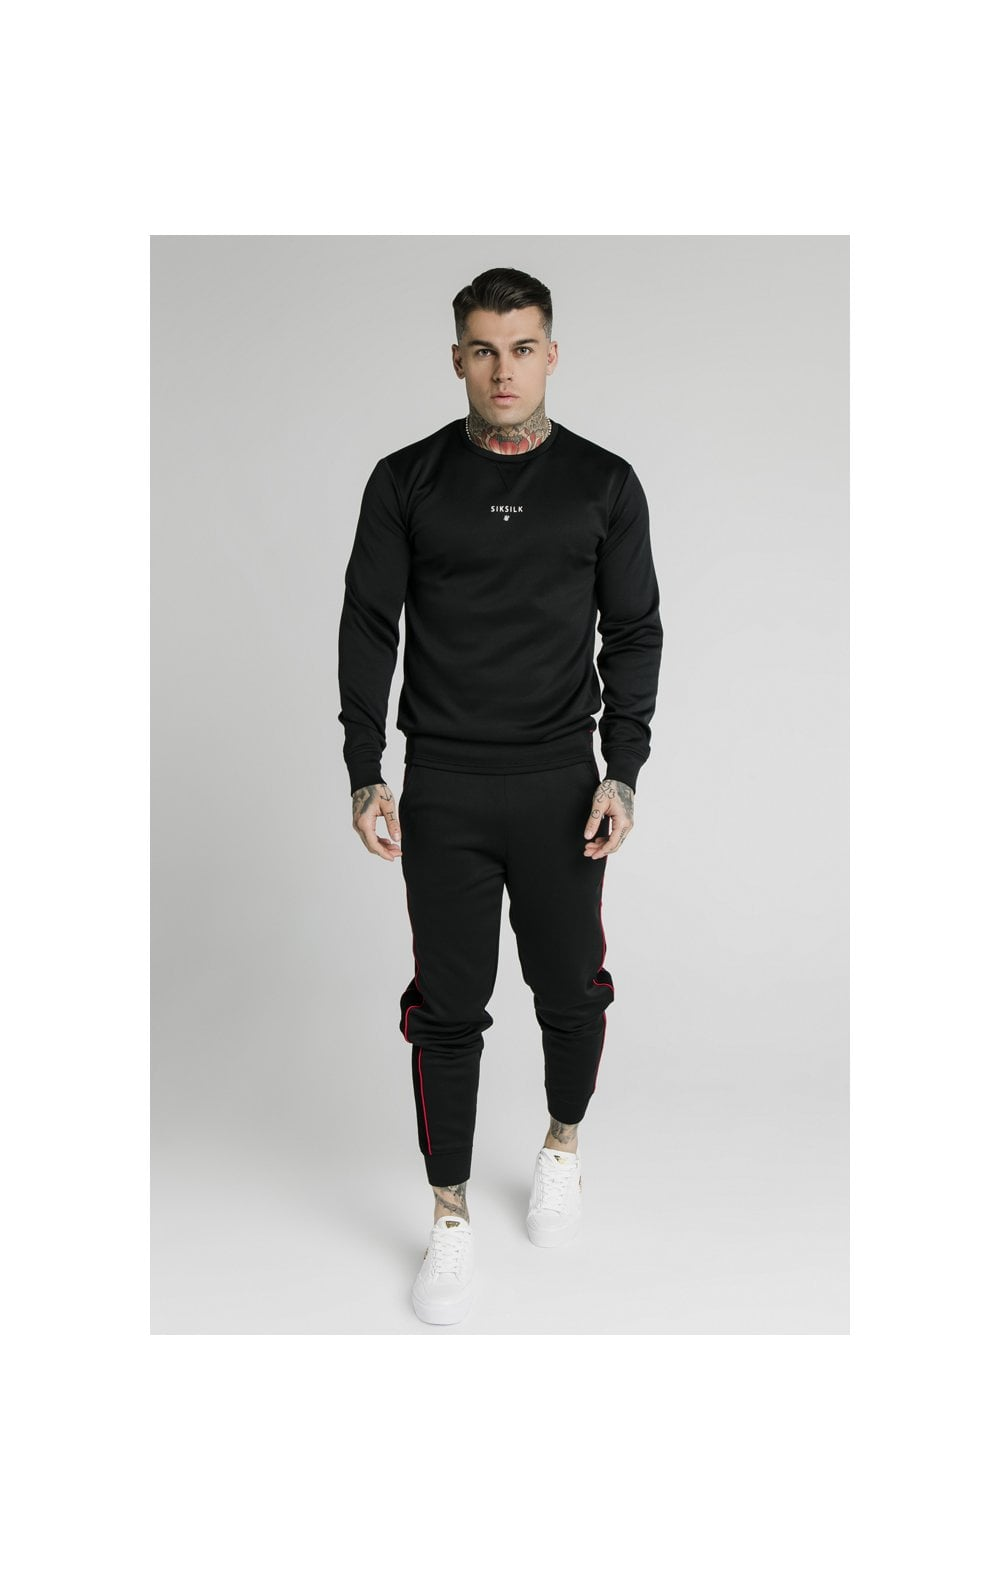 SikSilk Imperial Crew Neck Sweater - Black (5)